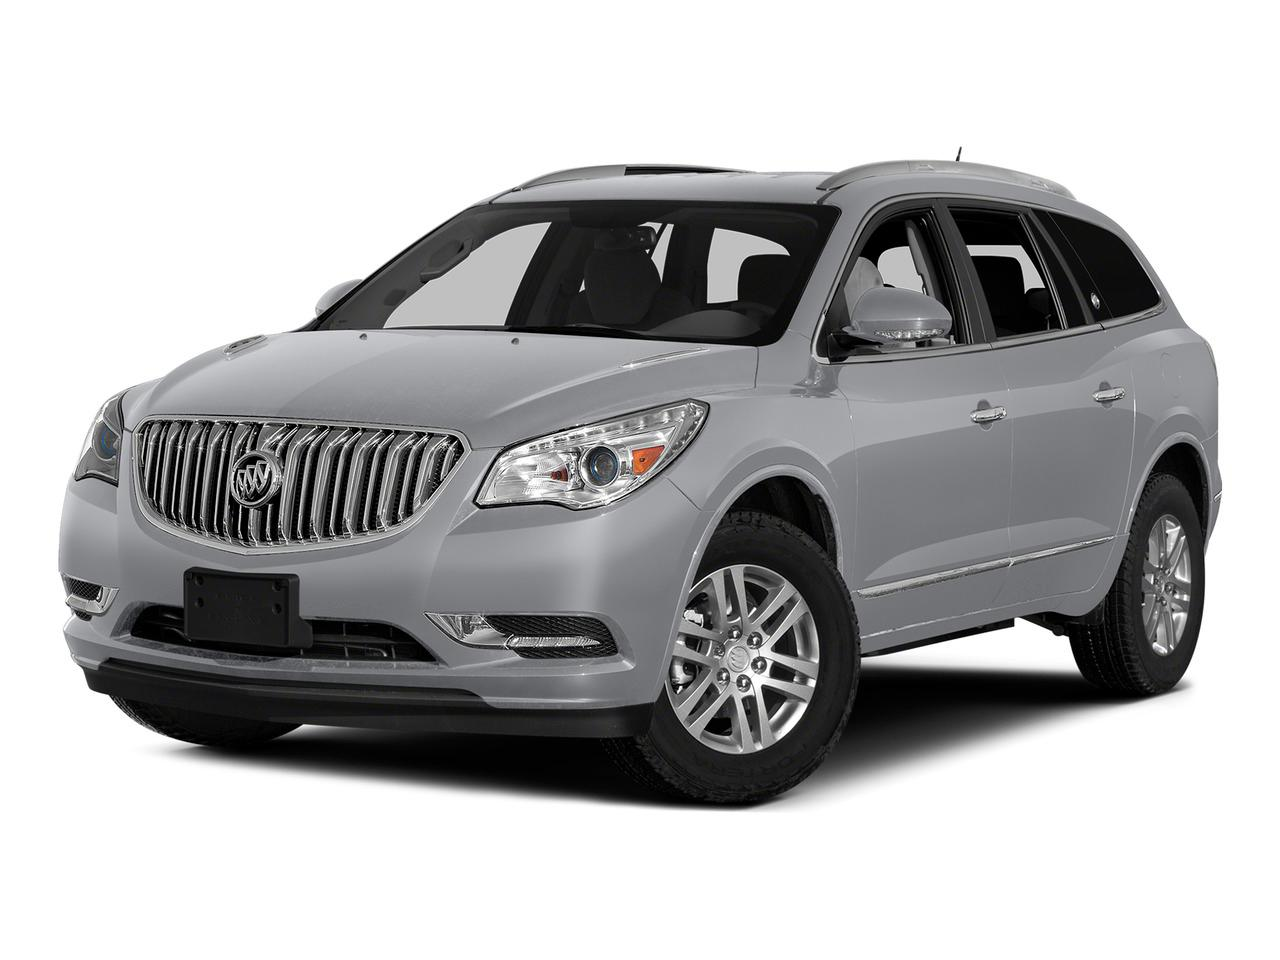 2015 Buick Enclave Vehicle Photo in Lincoln, NE 68521